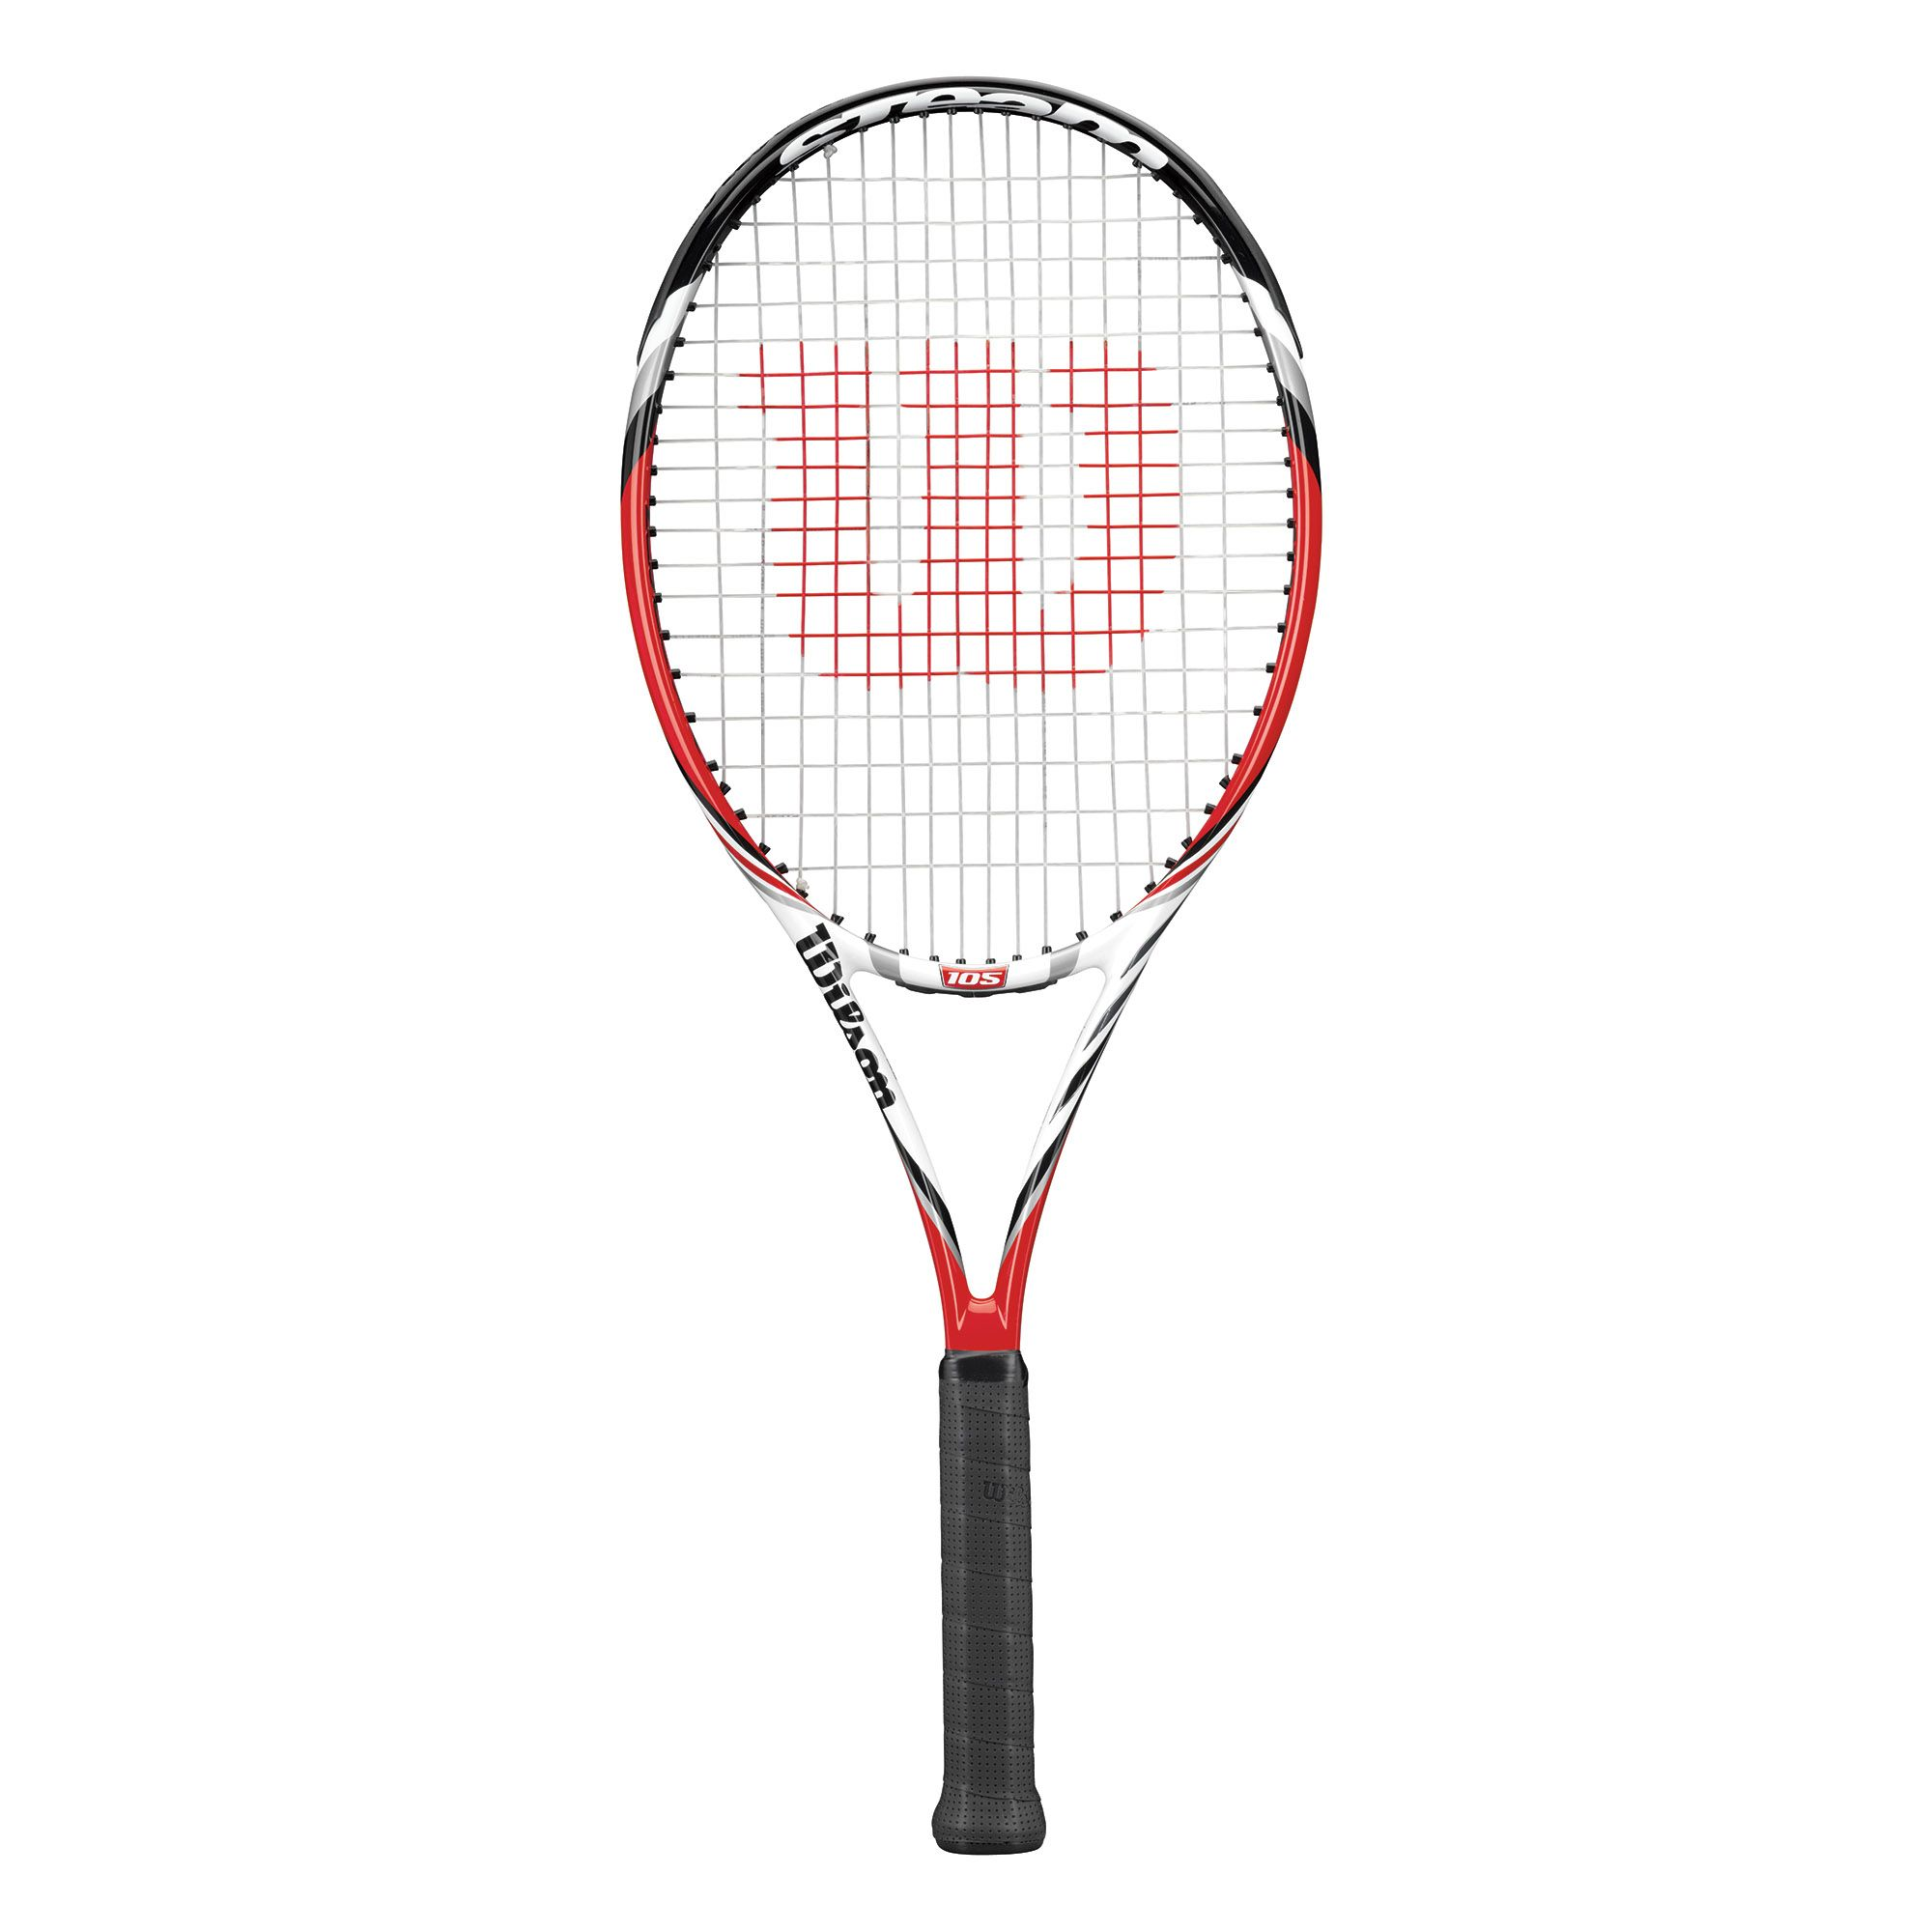 Free Racket Download Free Clip Art Free Clip Art On